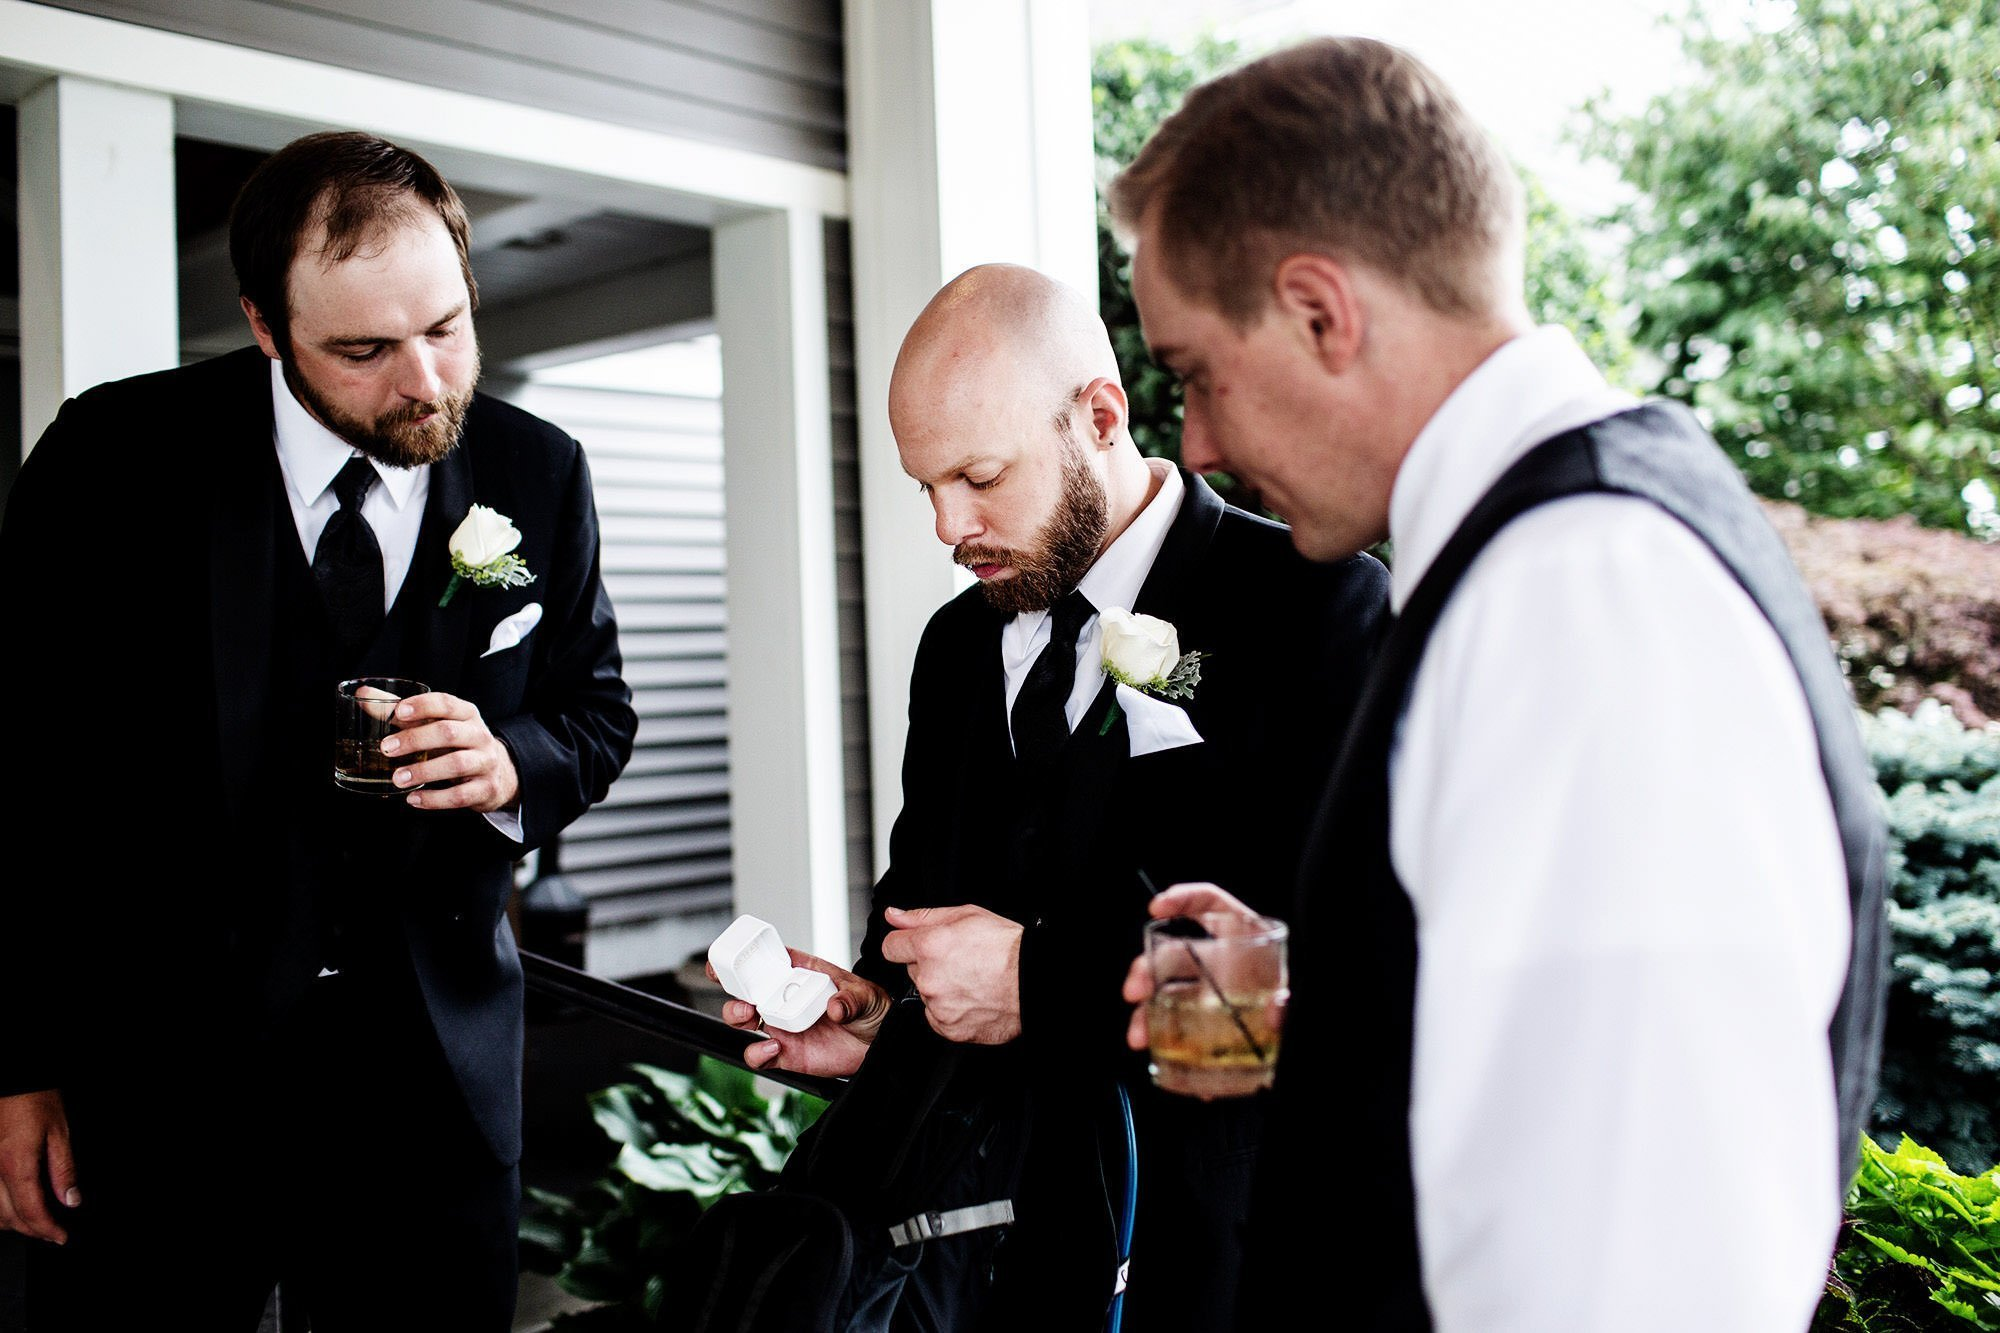 The groomsmen check out the wedding rings during this White Cliffs Country Club Wedding.